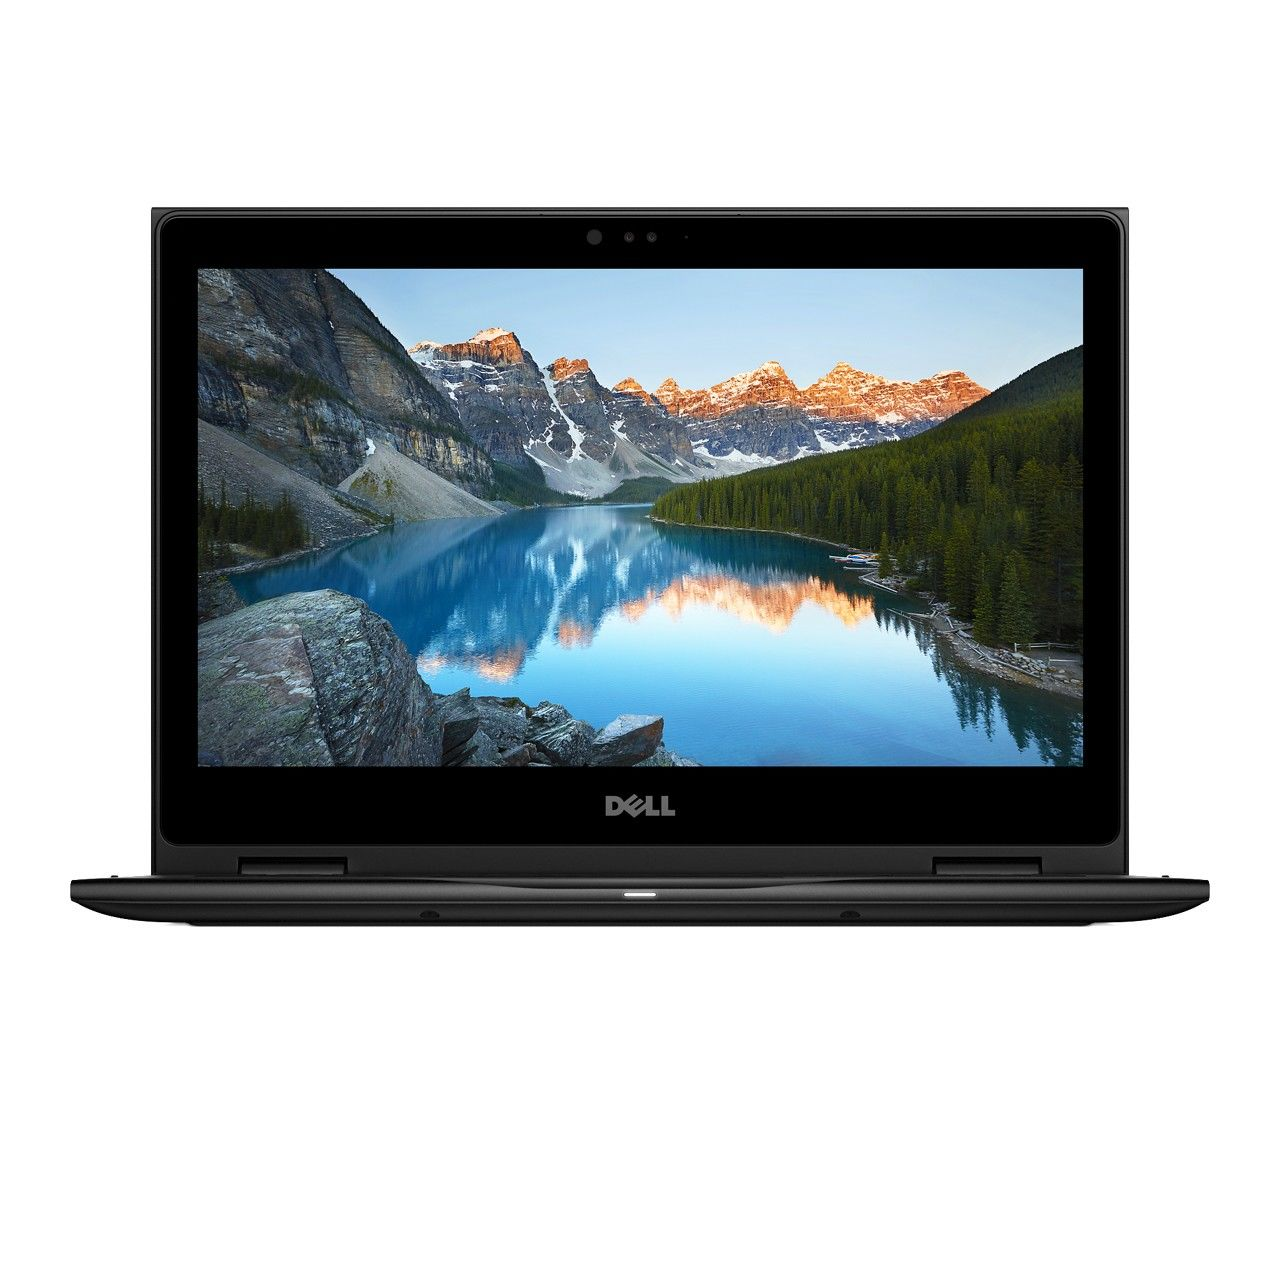 Notebook Dell Latitude 3390 2-in-1 13.3 Full HD Intel Core i5-8250U RAM 8GB SSD 256GB Windows 10 Pro